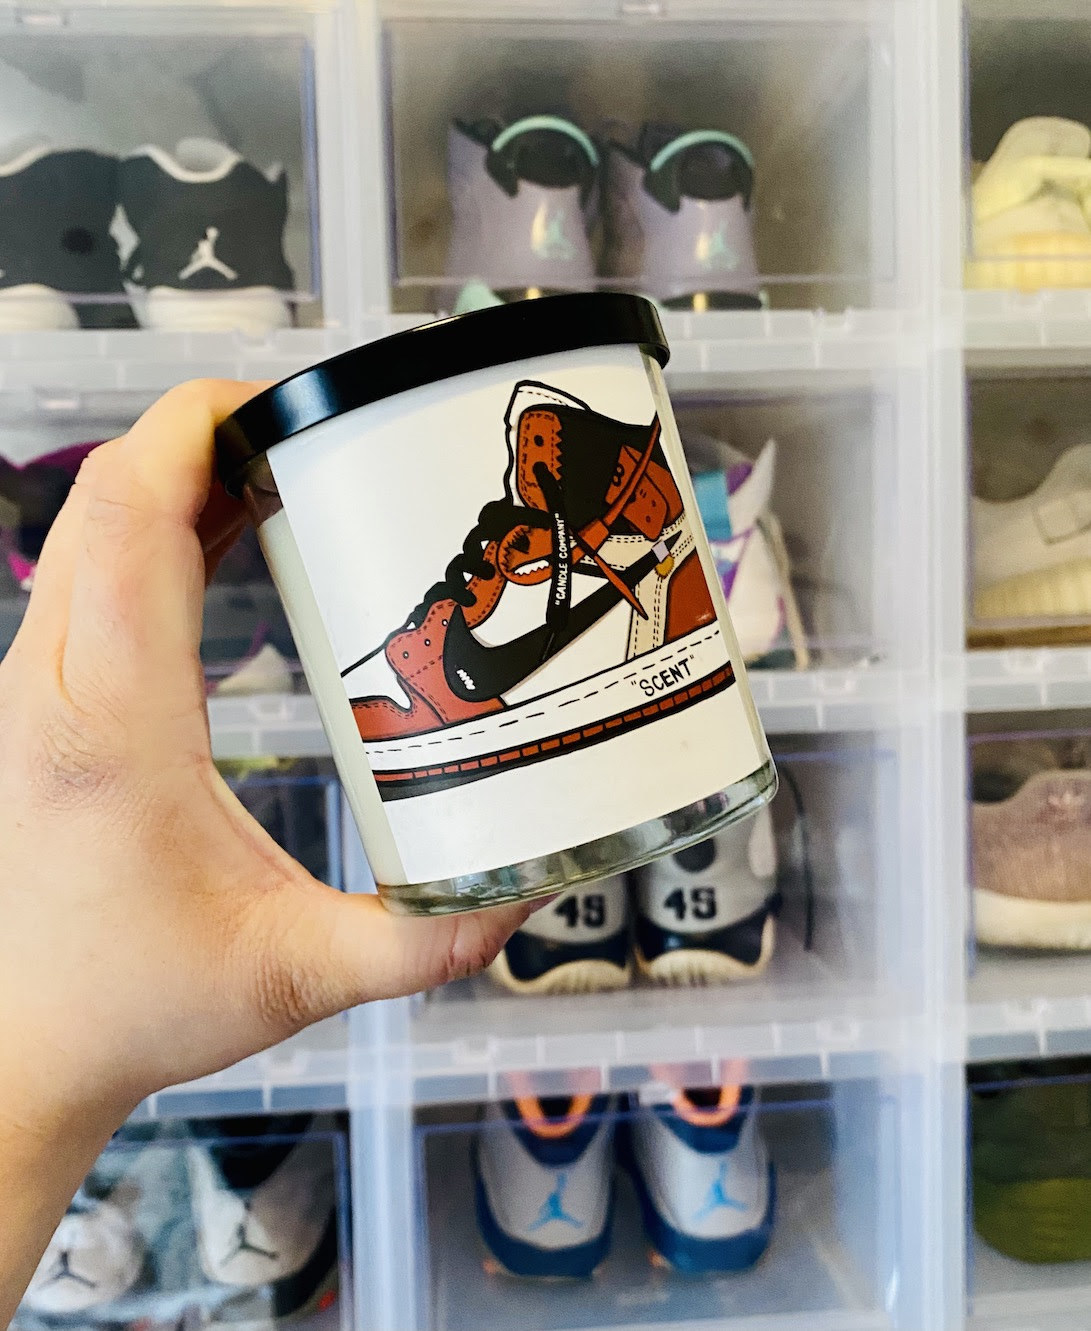 buzzfeed editor holding a candle jar with an illustration of a black, white, and red Air Jordan 1 sneaker on it